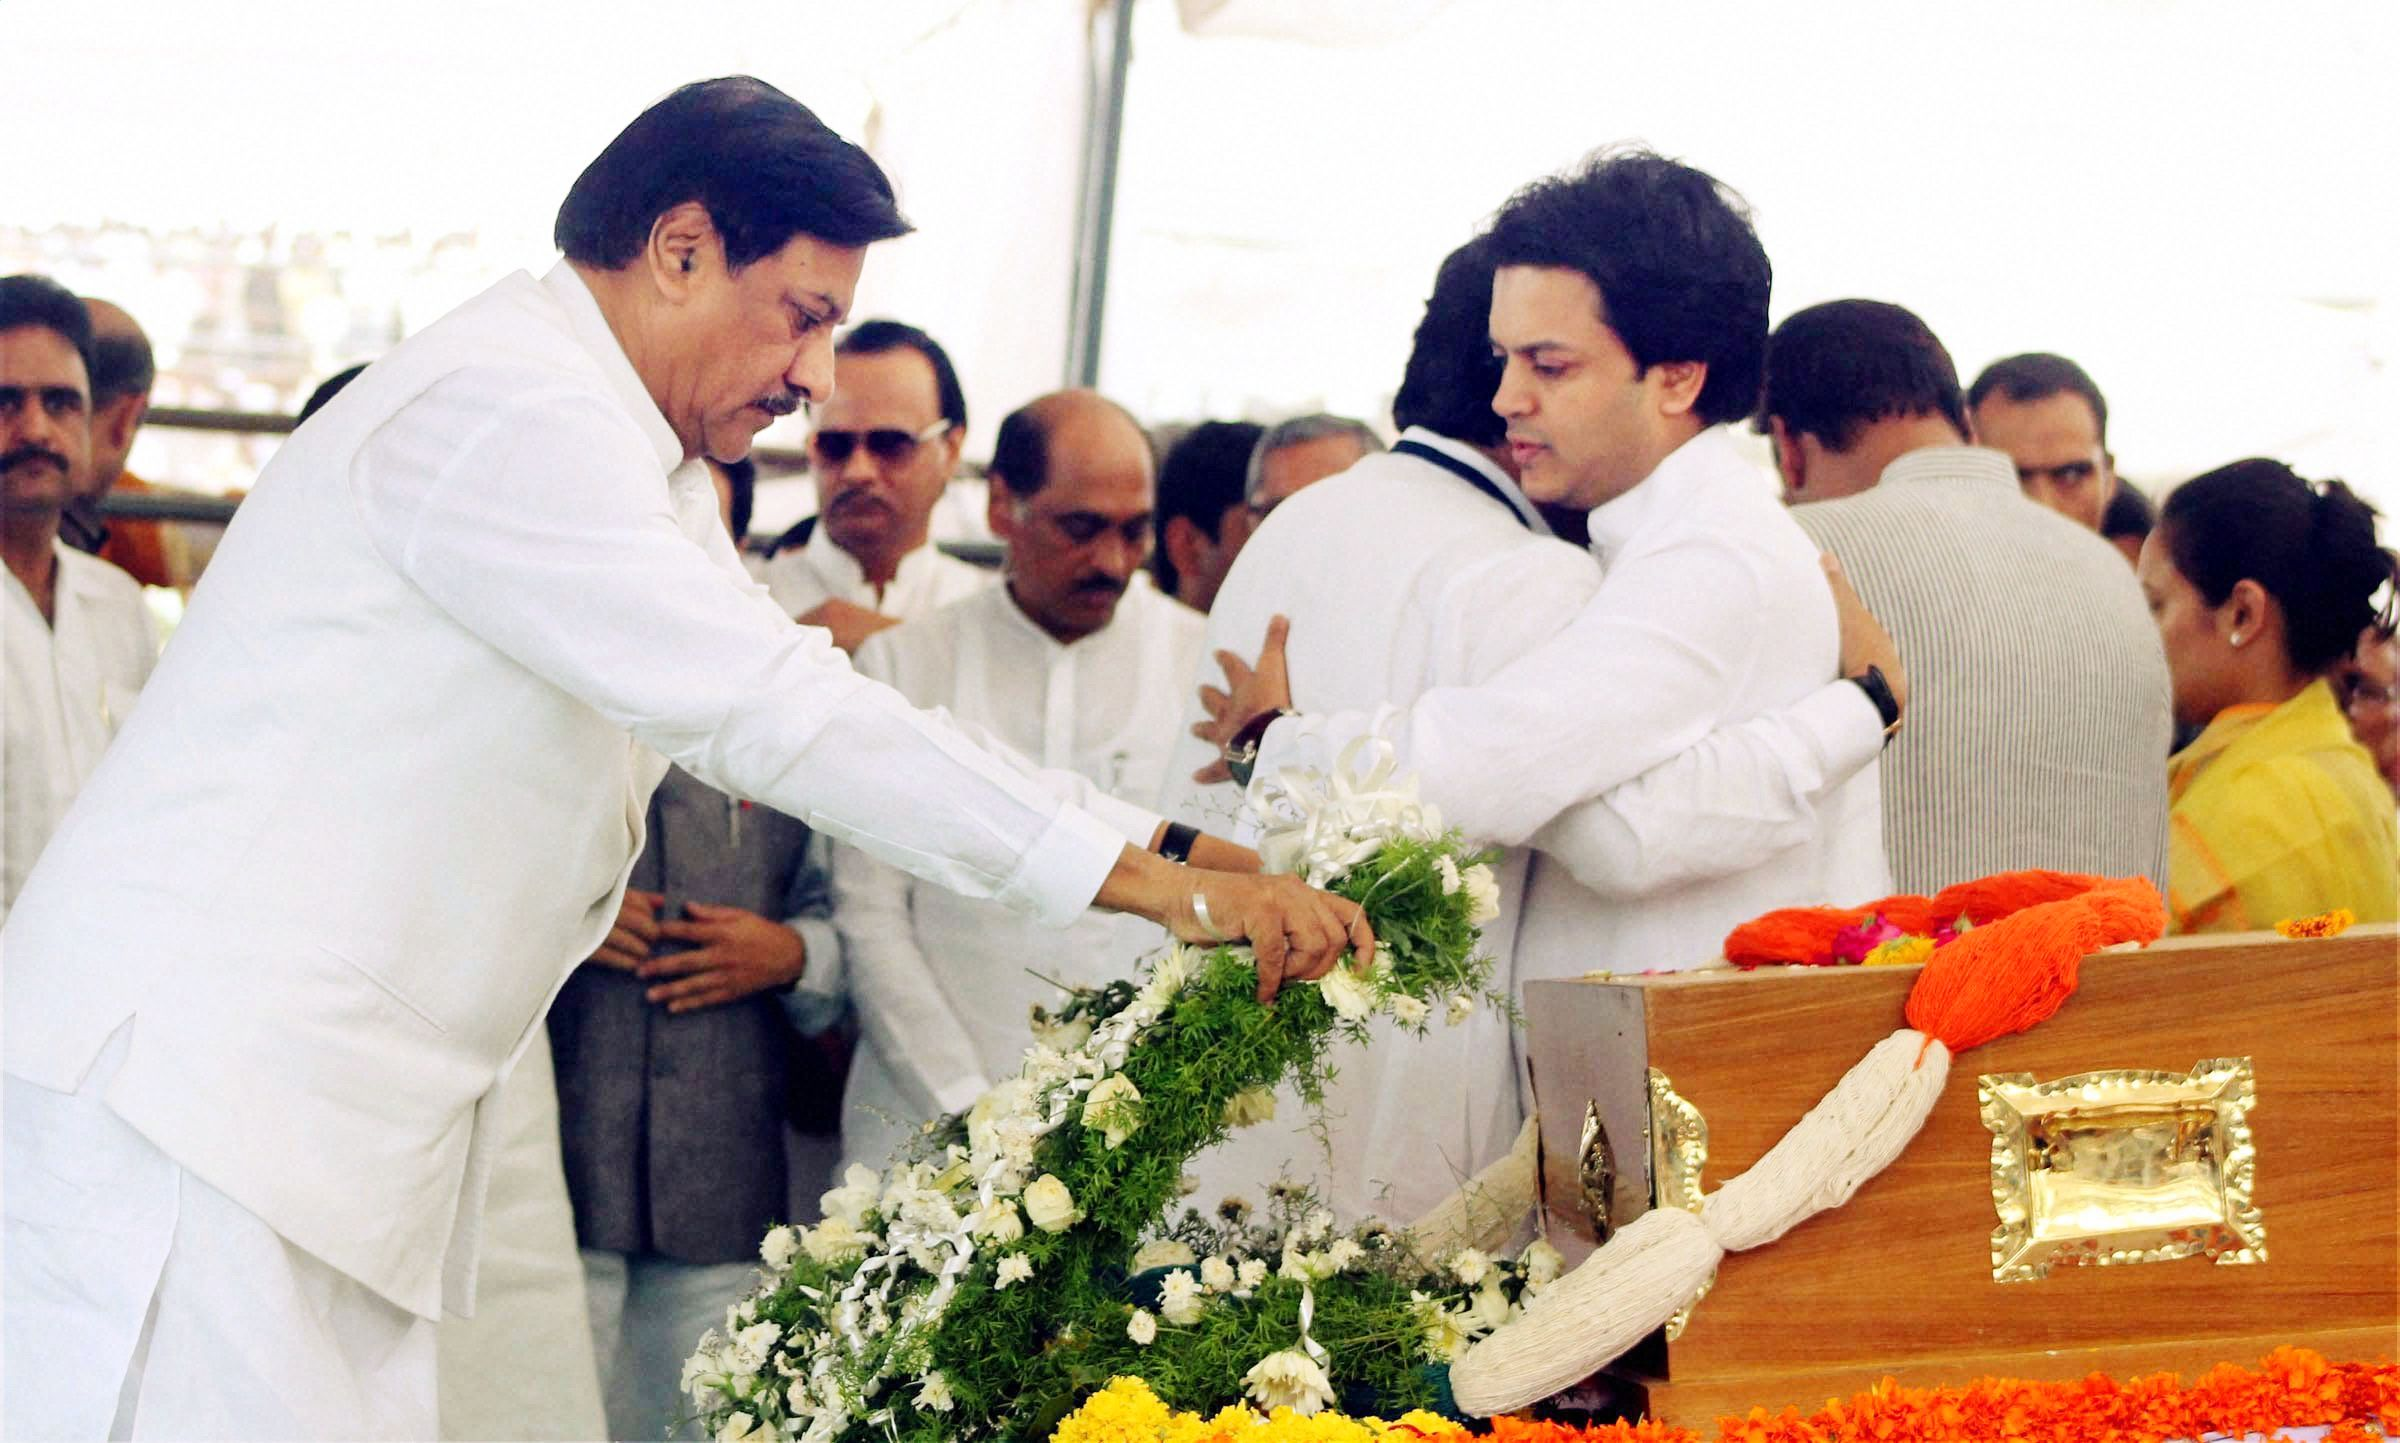 Maharashtra chief minister Prithviraj Chavan paying his last respect to Vilasrao Deshmukh at Babhalgaon in Latur.